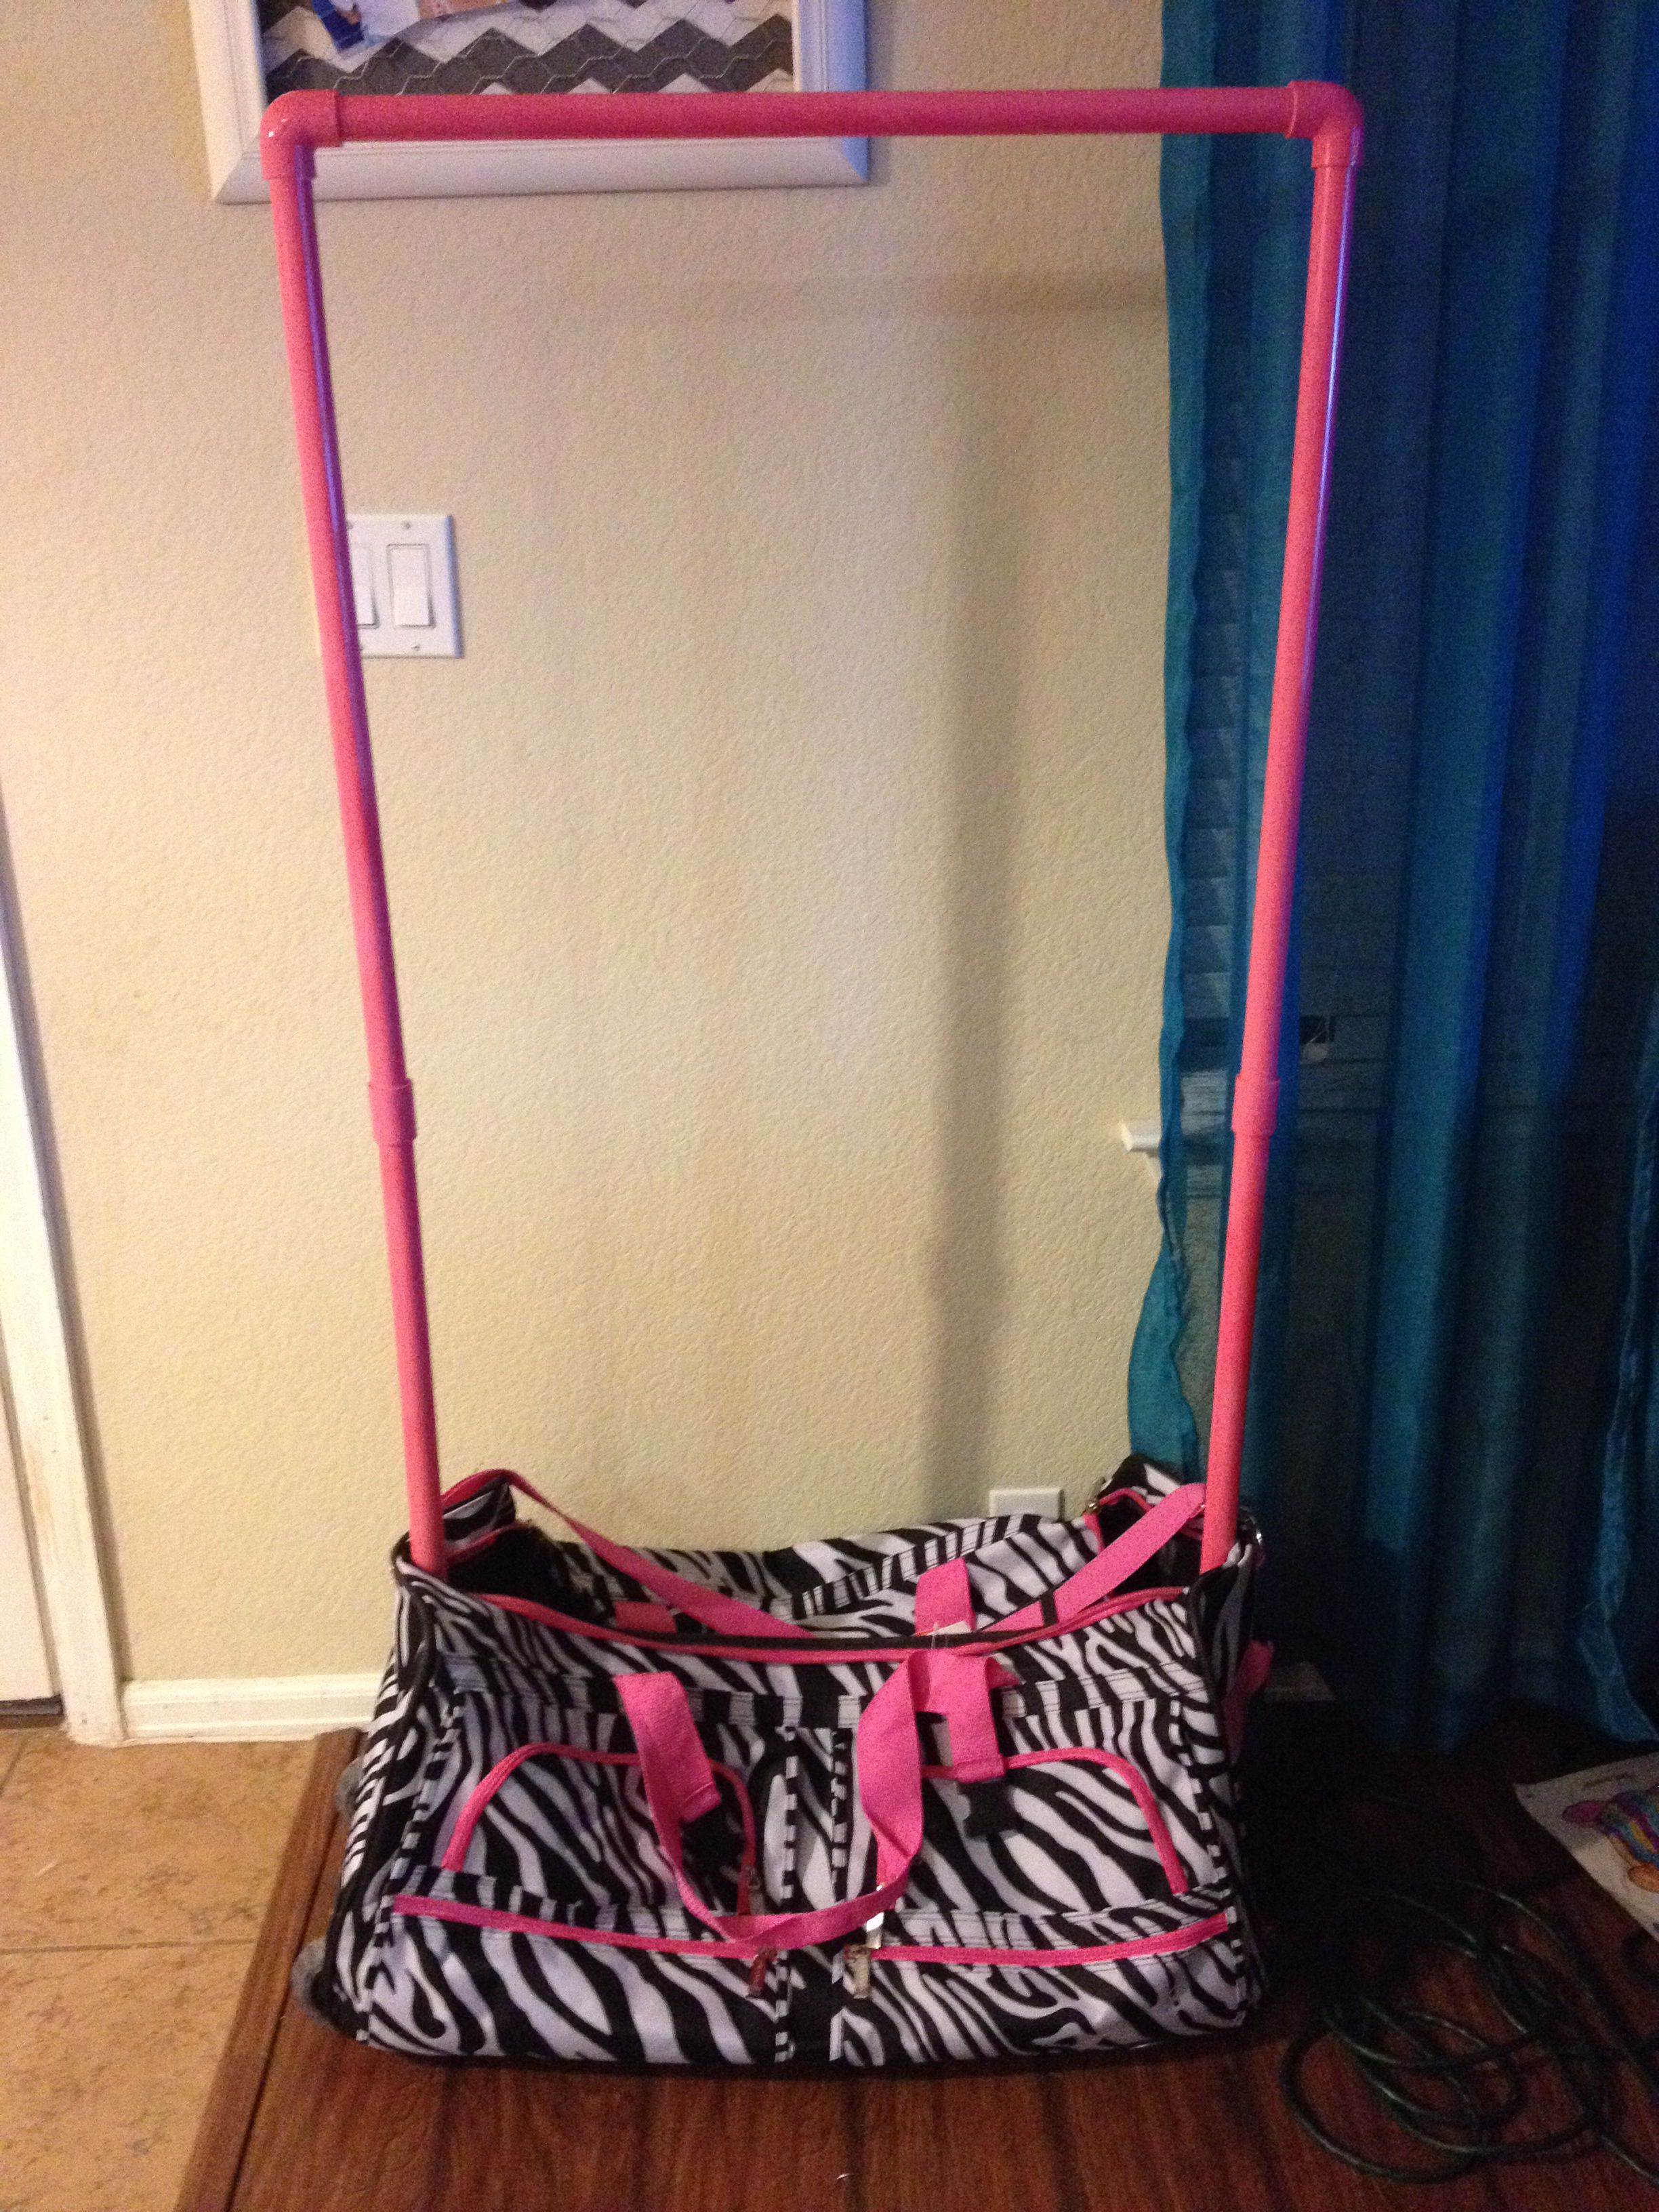 Diy Dream Duffel My Husband Made This For Daughter 1 3 Of The Price A Or Rac N Roll